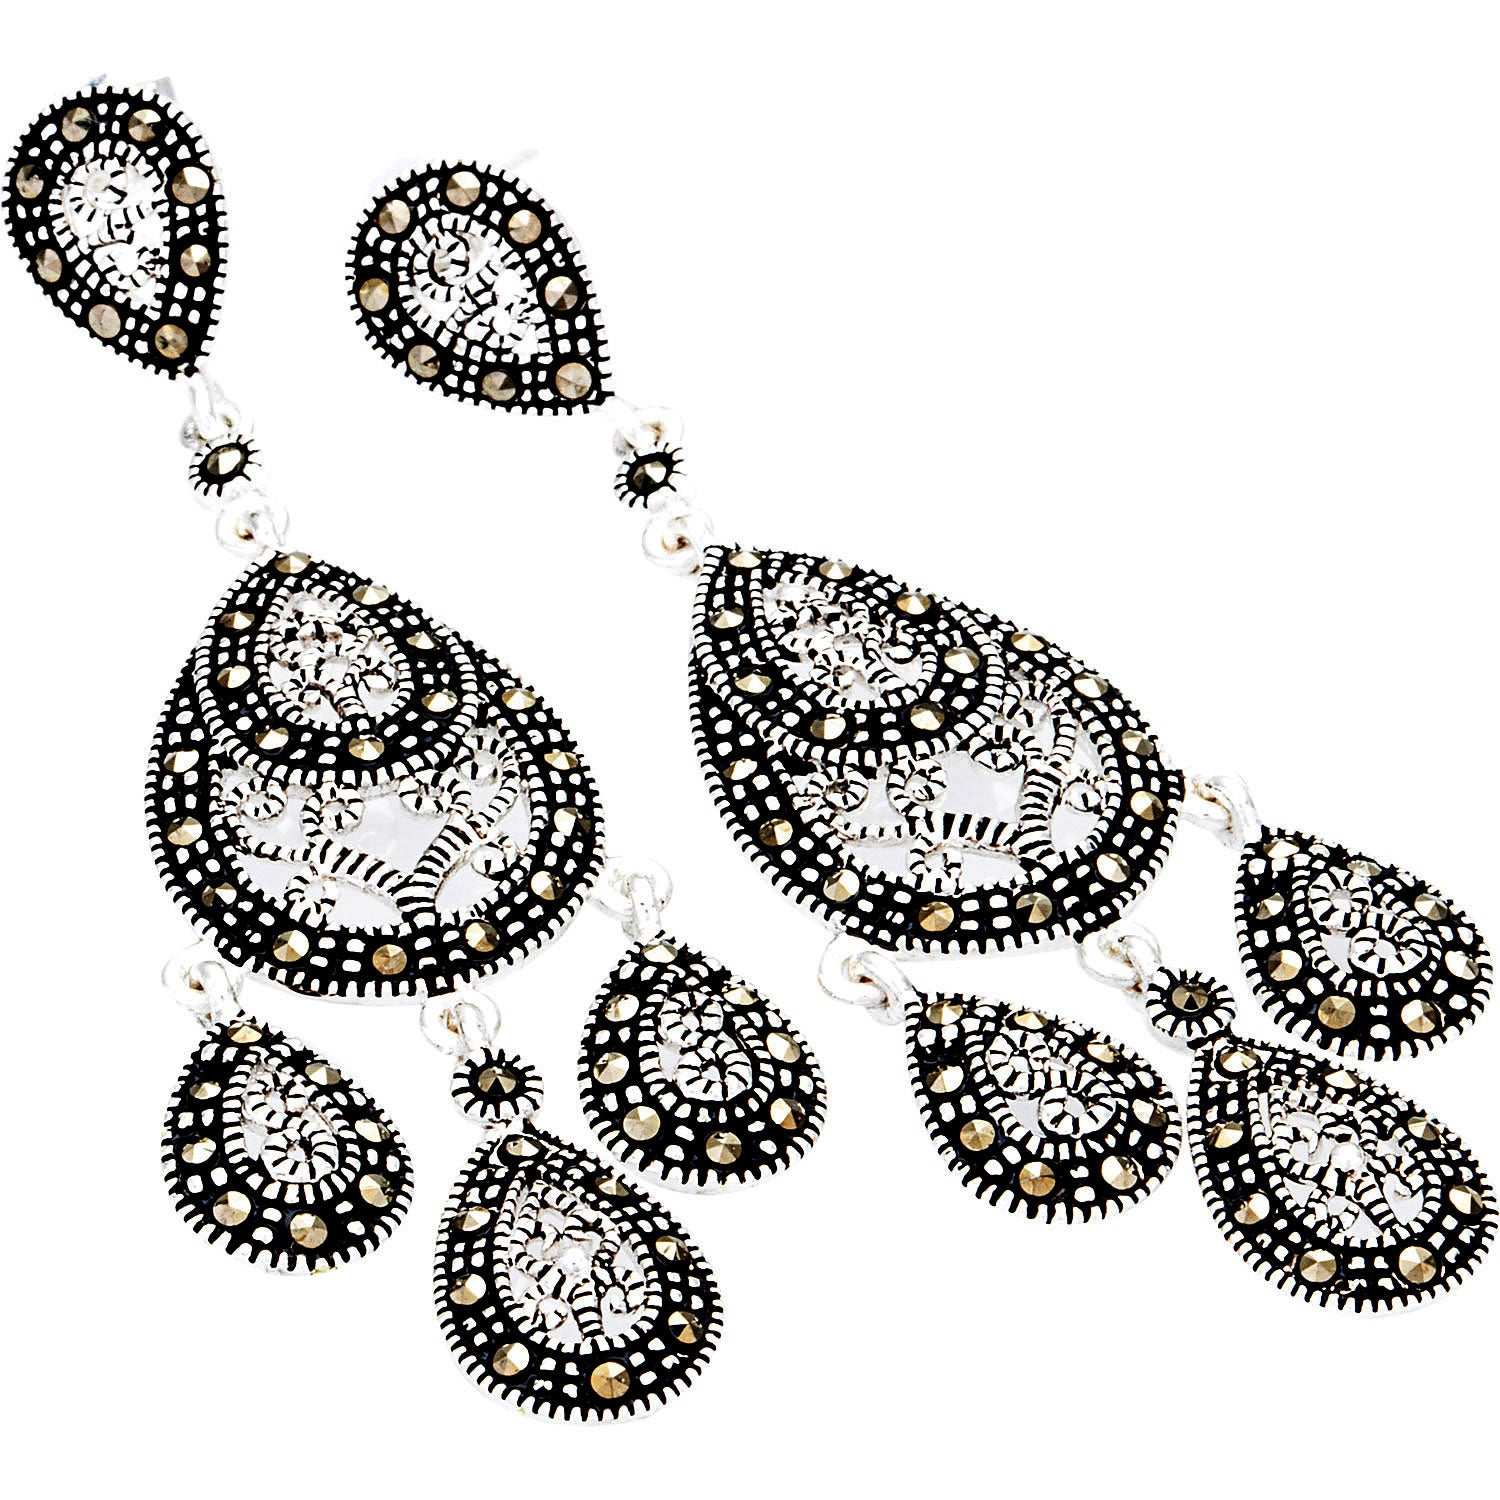 Silverplated marcasite chandelier earrings free shipping on orders silverplated marcasite chandelier earrings free shipping on orders over 45 overstock 17657375 aloadofball Image collections